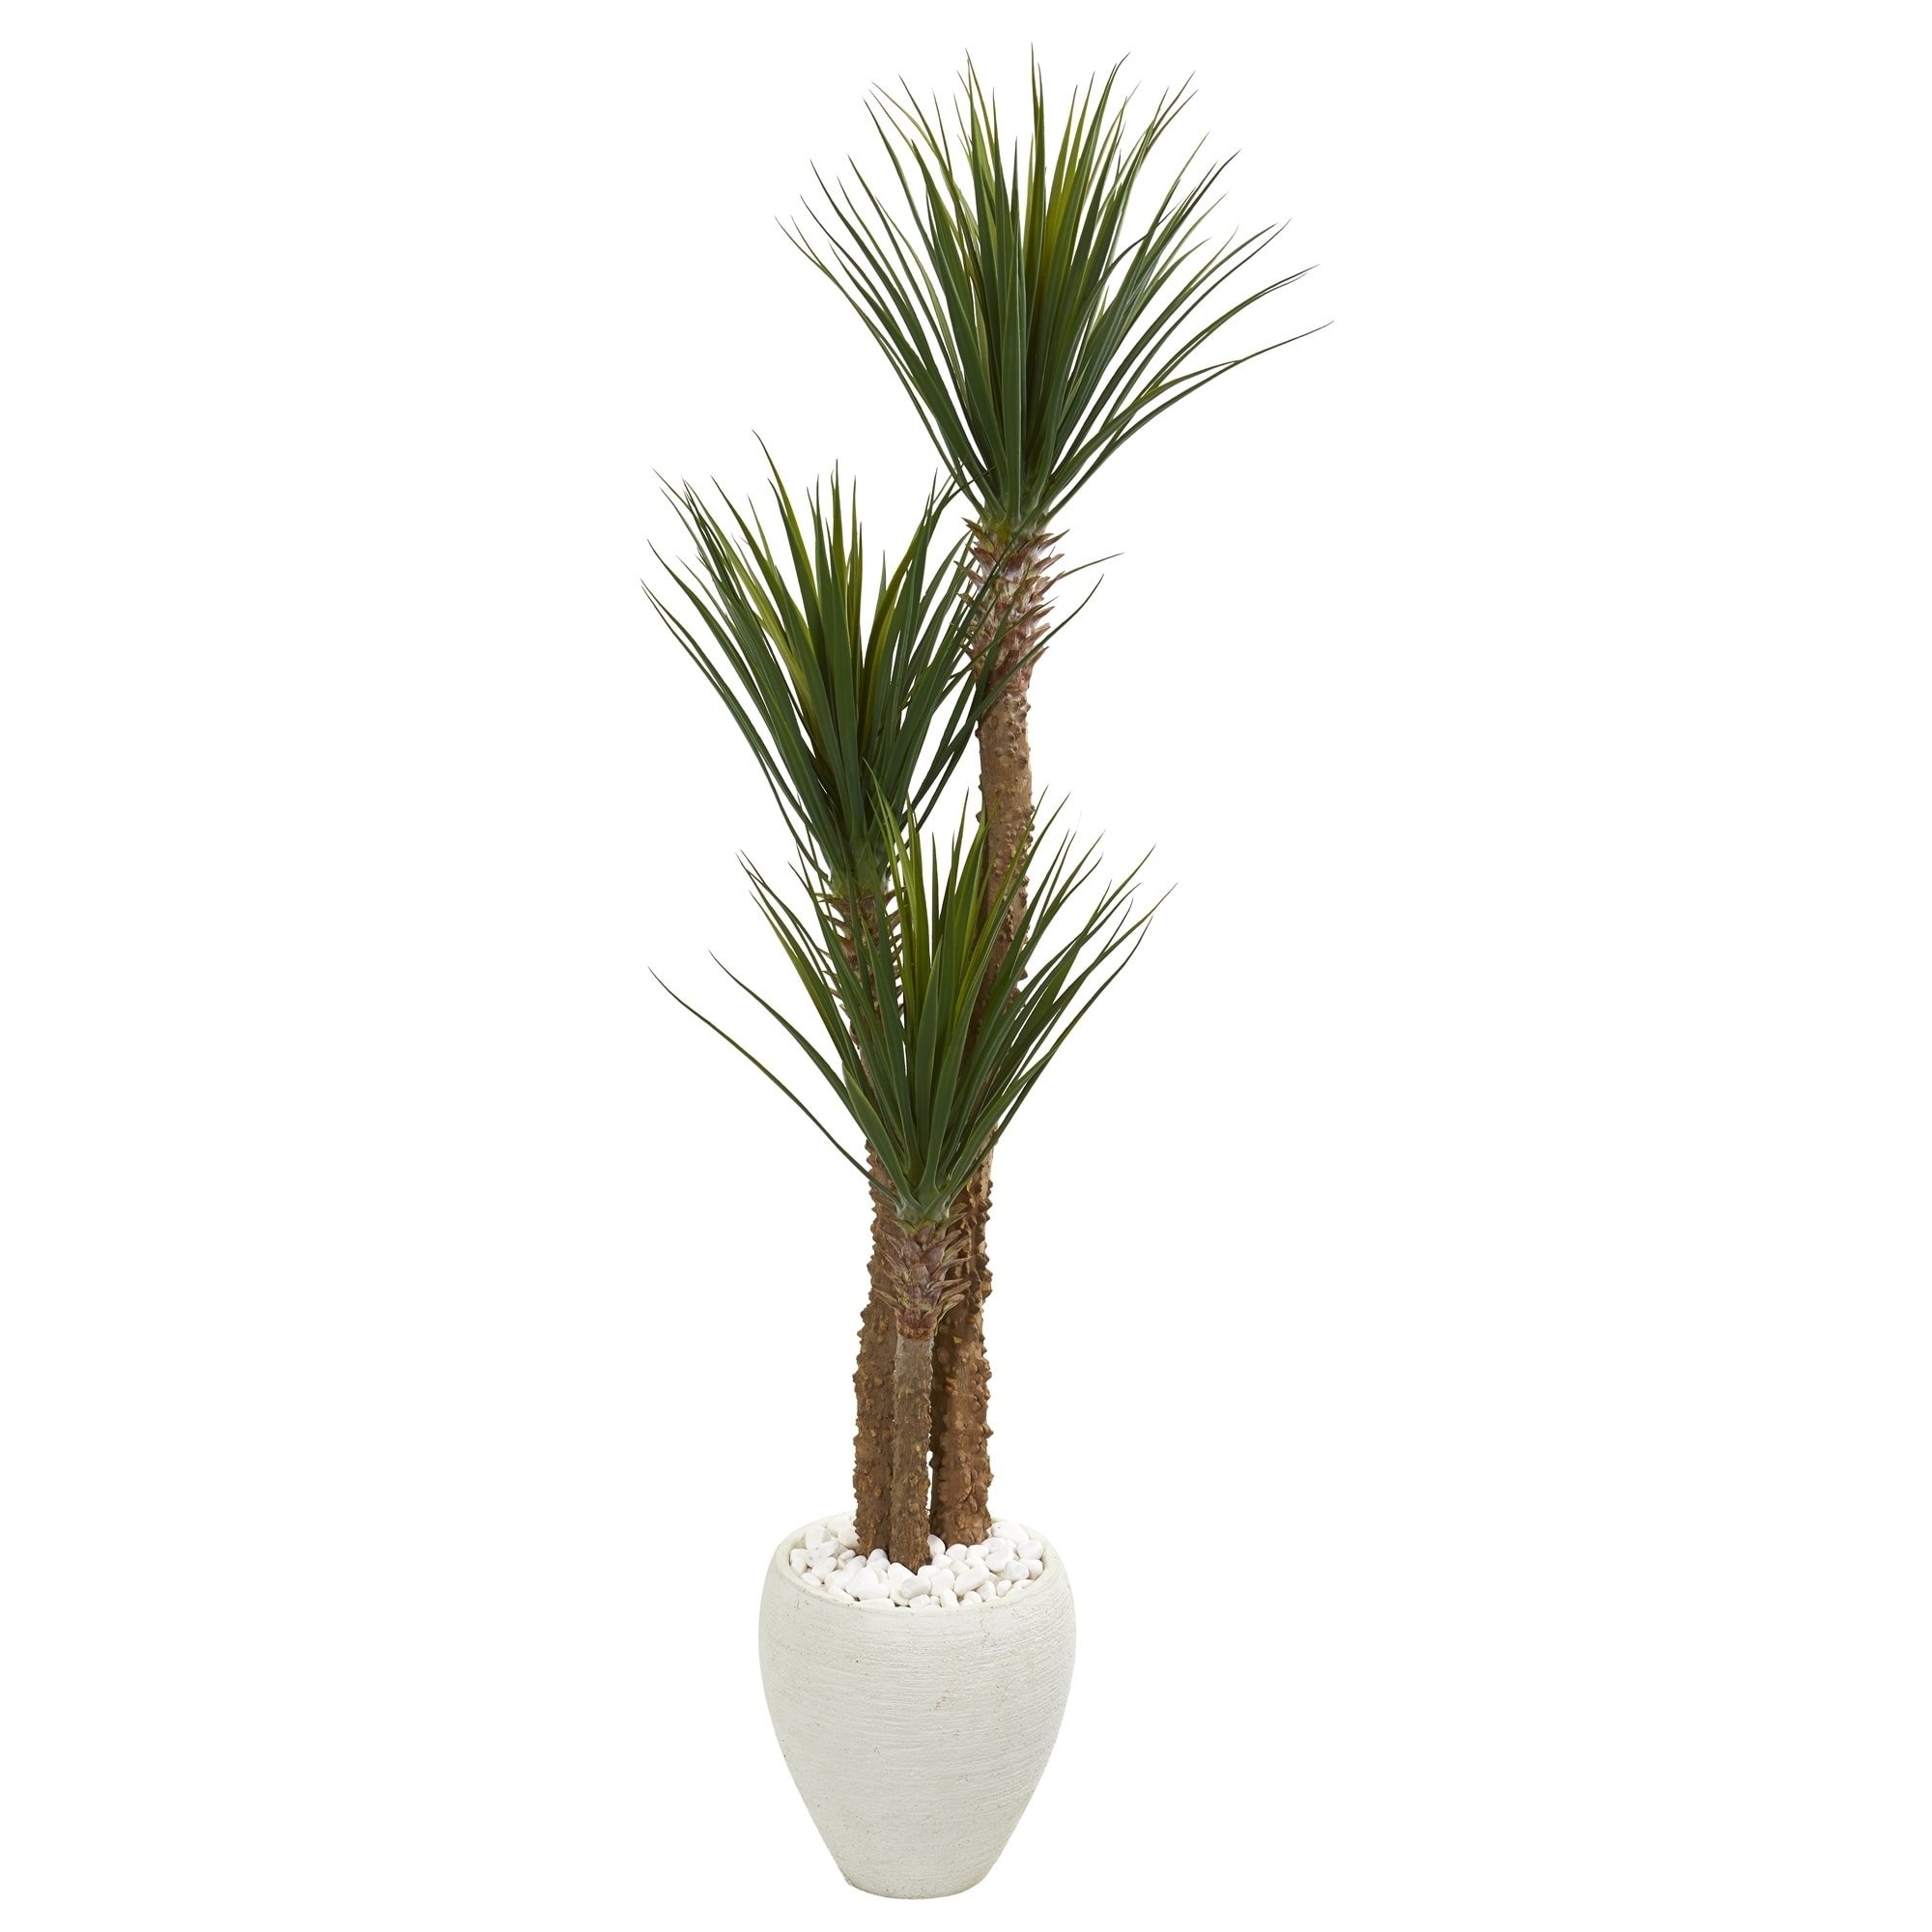 5.5 Yucca Artificial Tree in White Planter